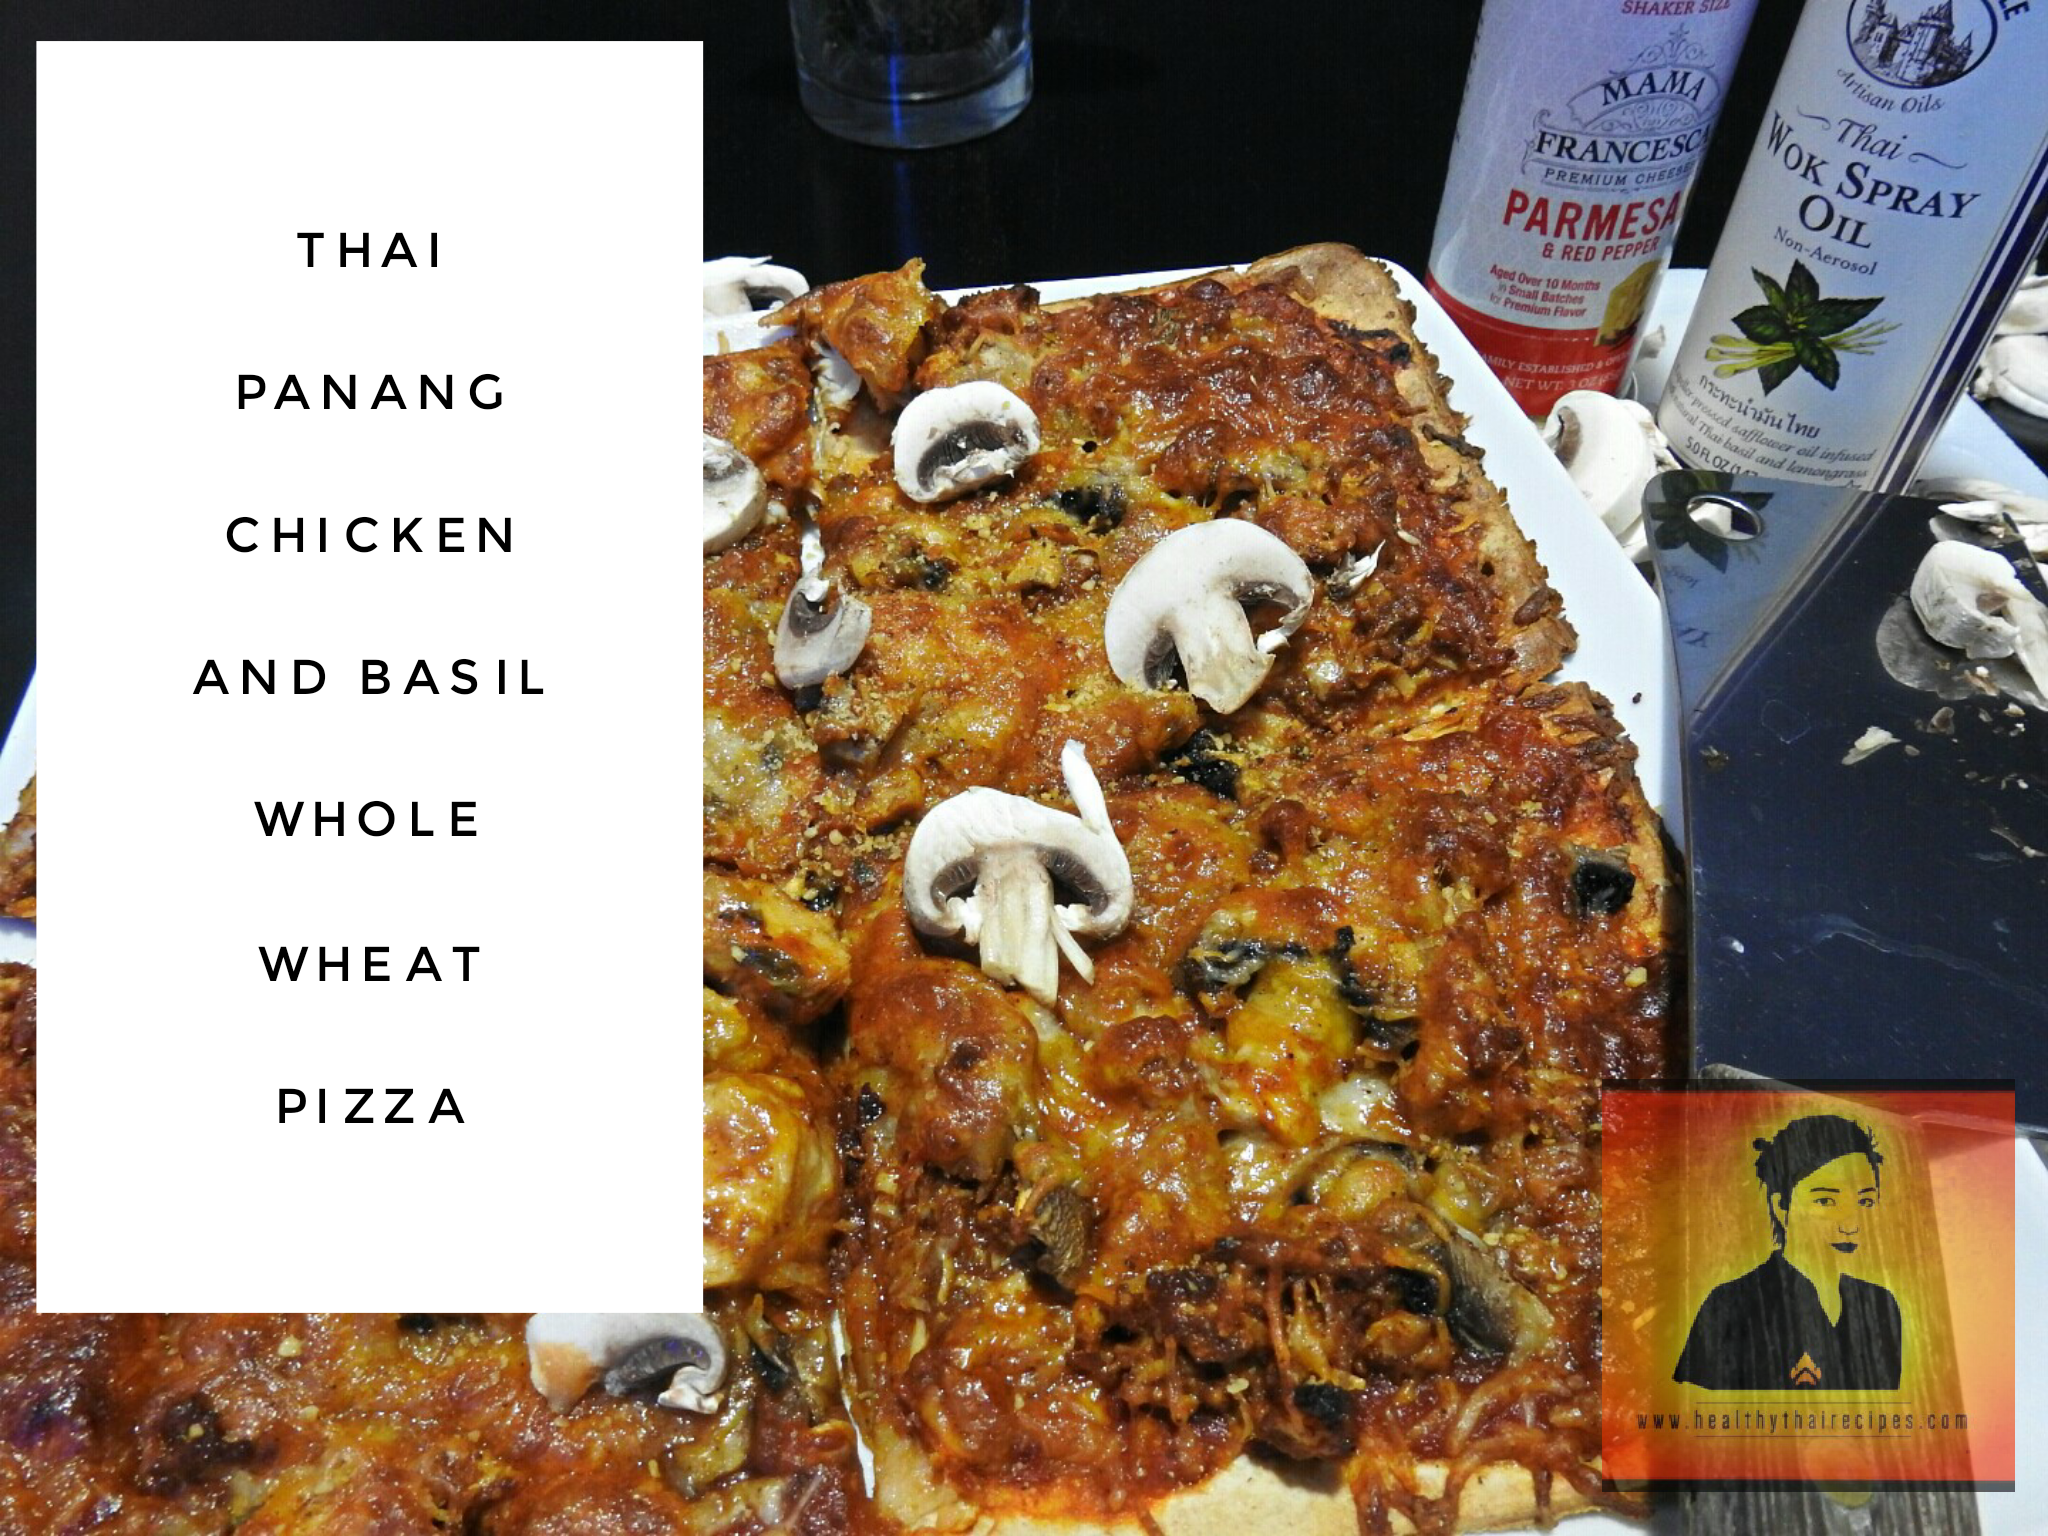 Thai Panang Basil Chicken Pizza on a Whole Wheat Crust ...